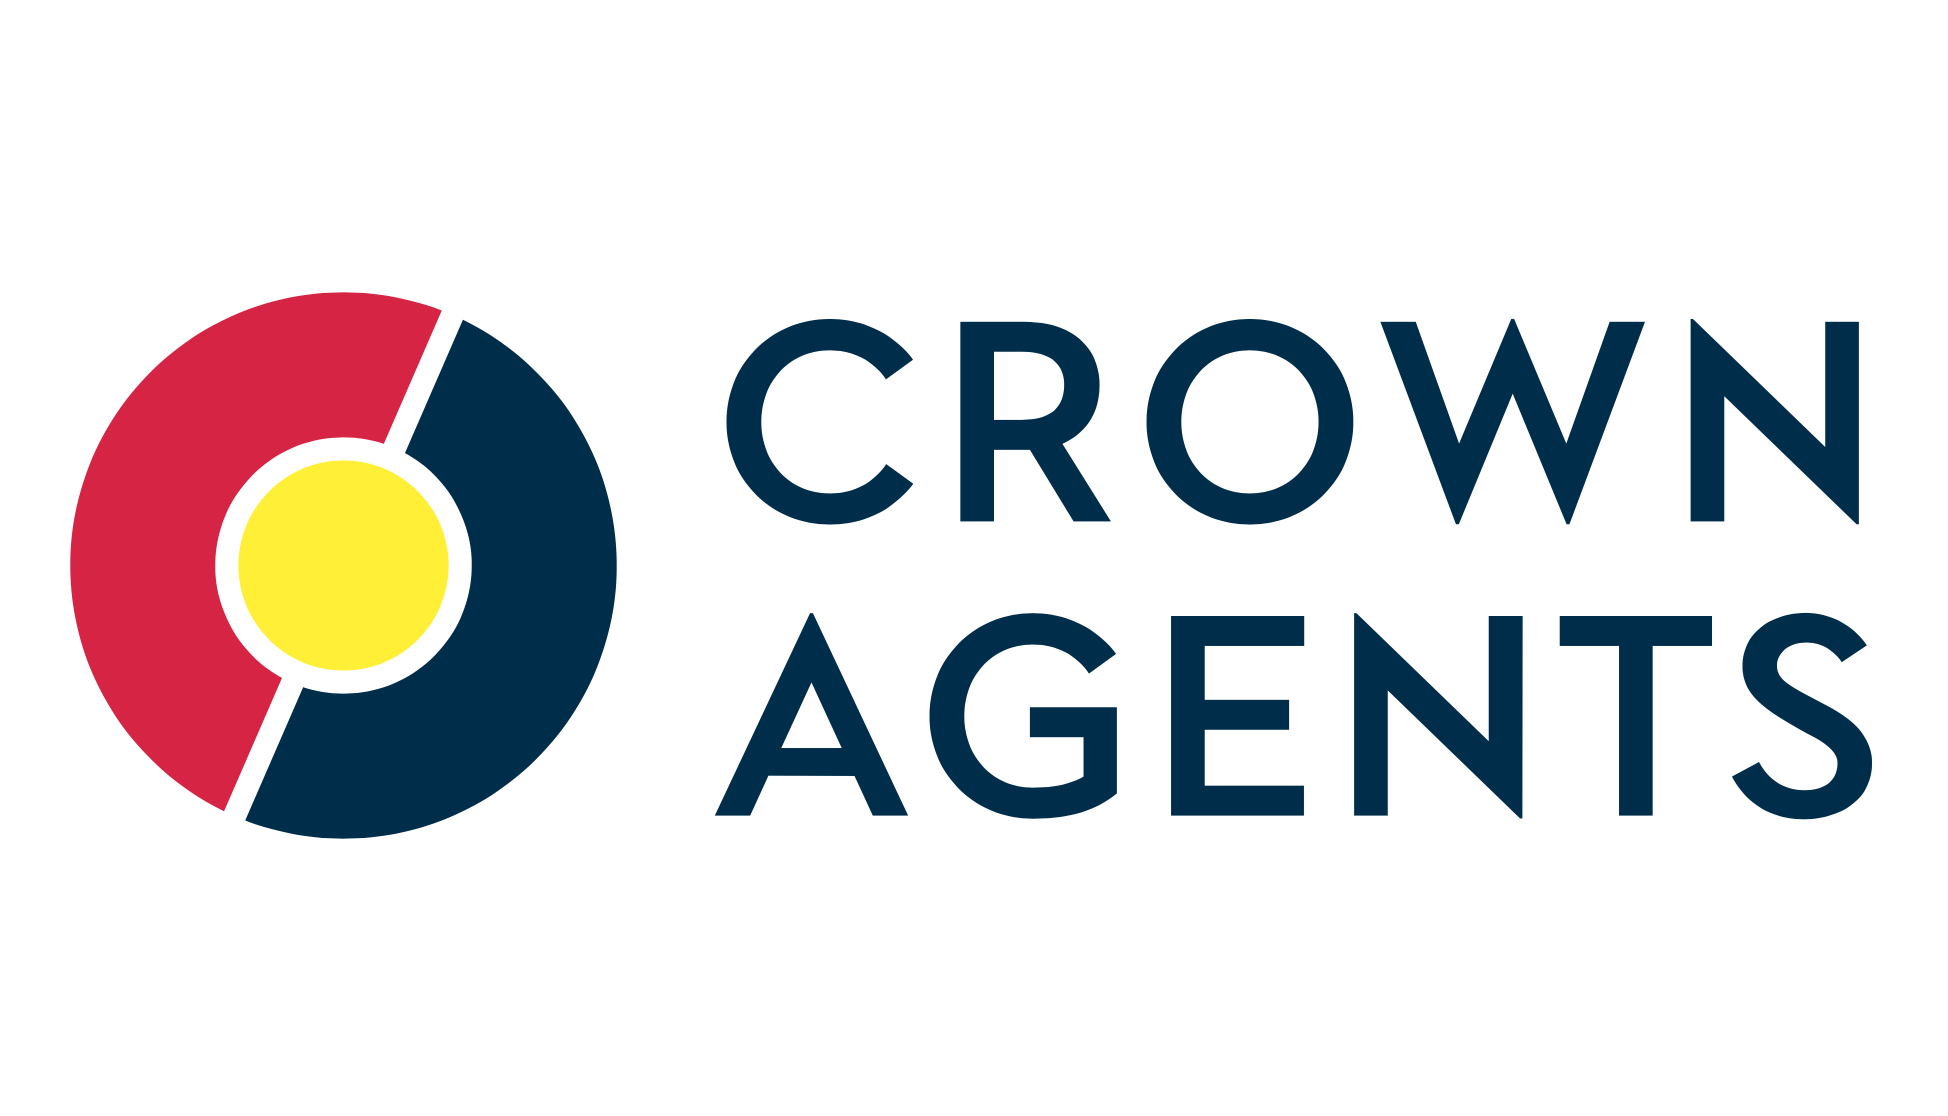 Ukrainian Invictus Games participants are now provided with state-of-the-art sports equipment courtesy of Crown Agents